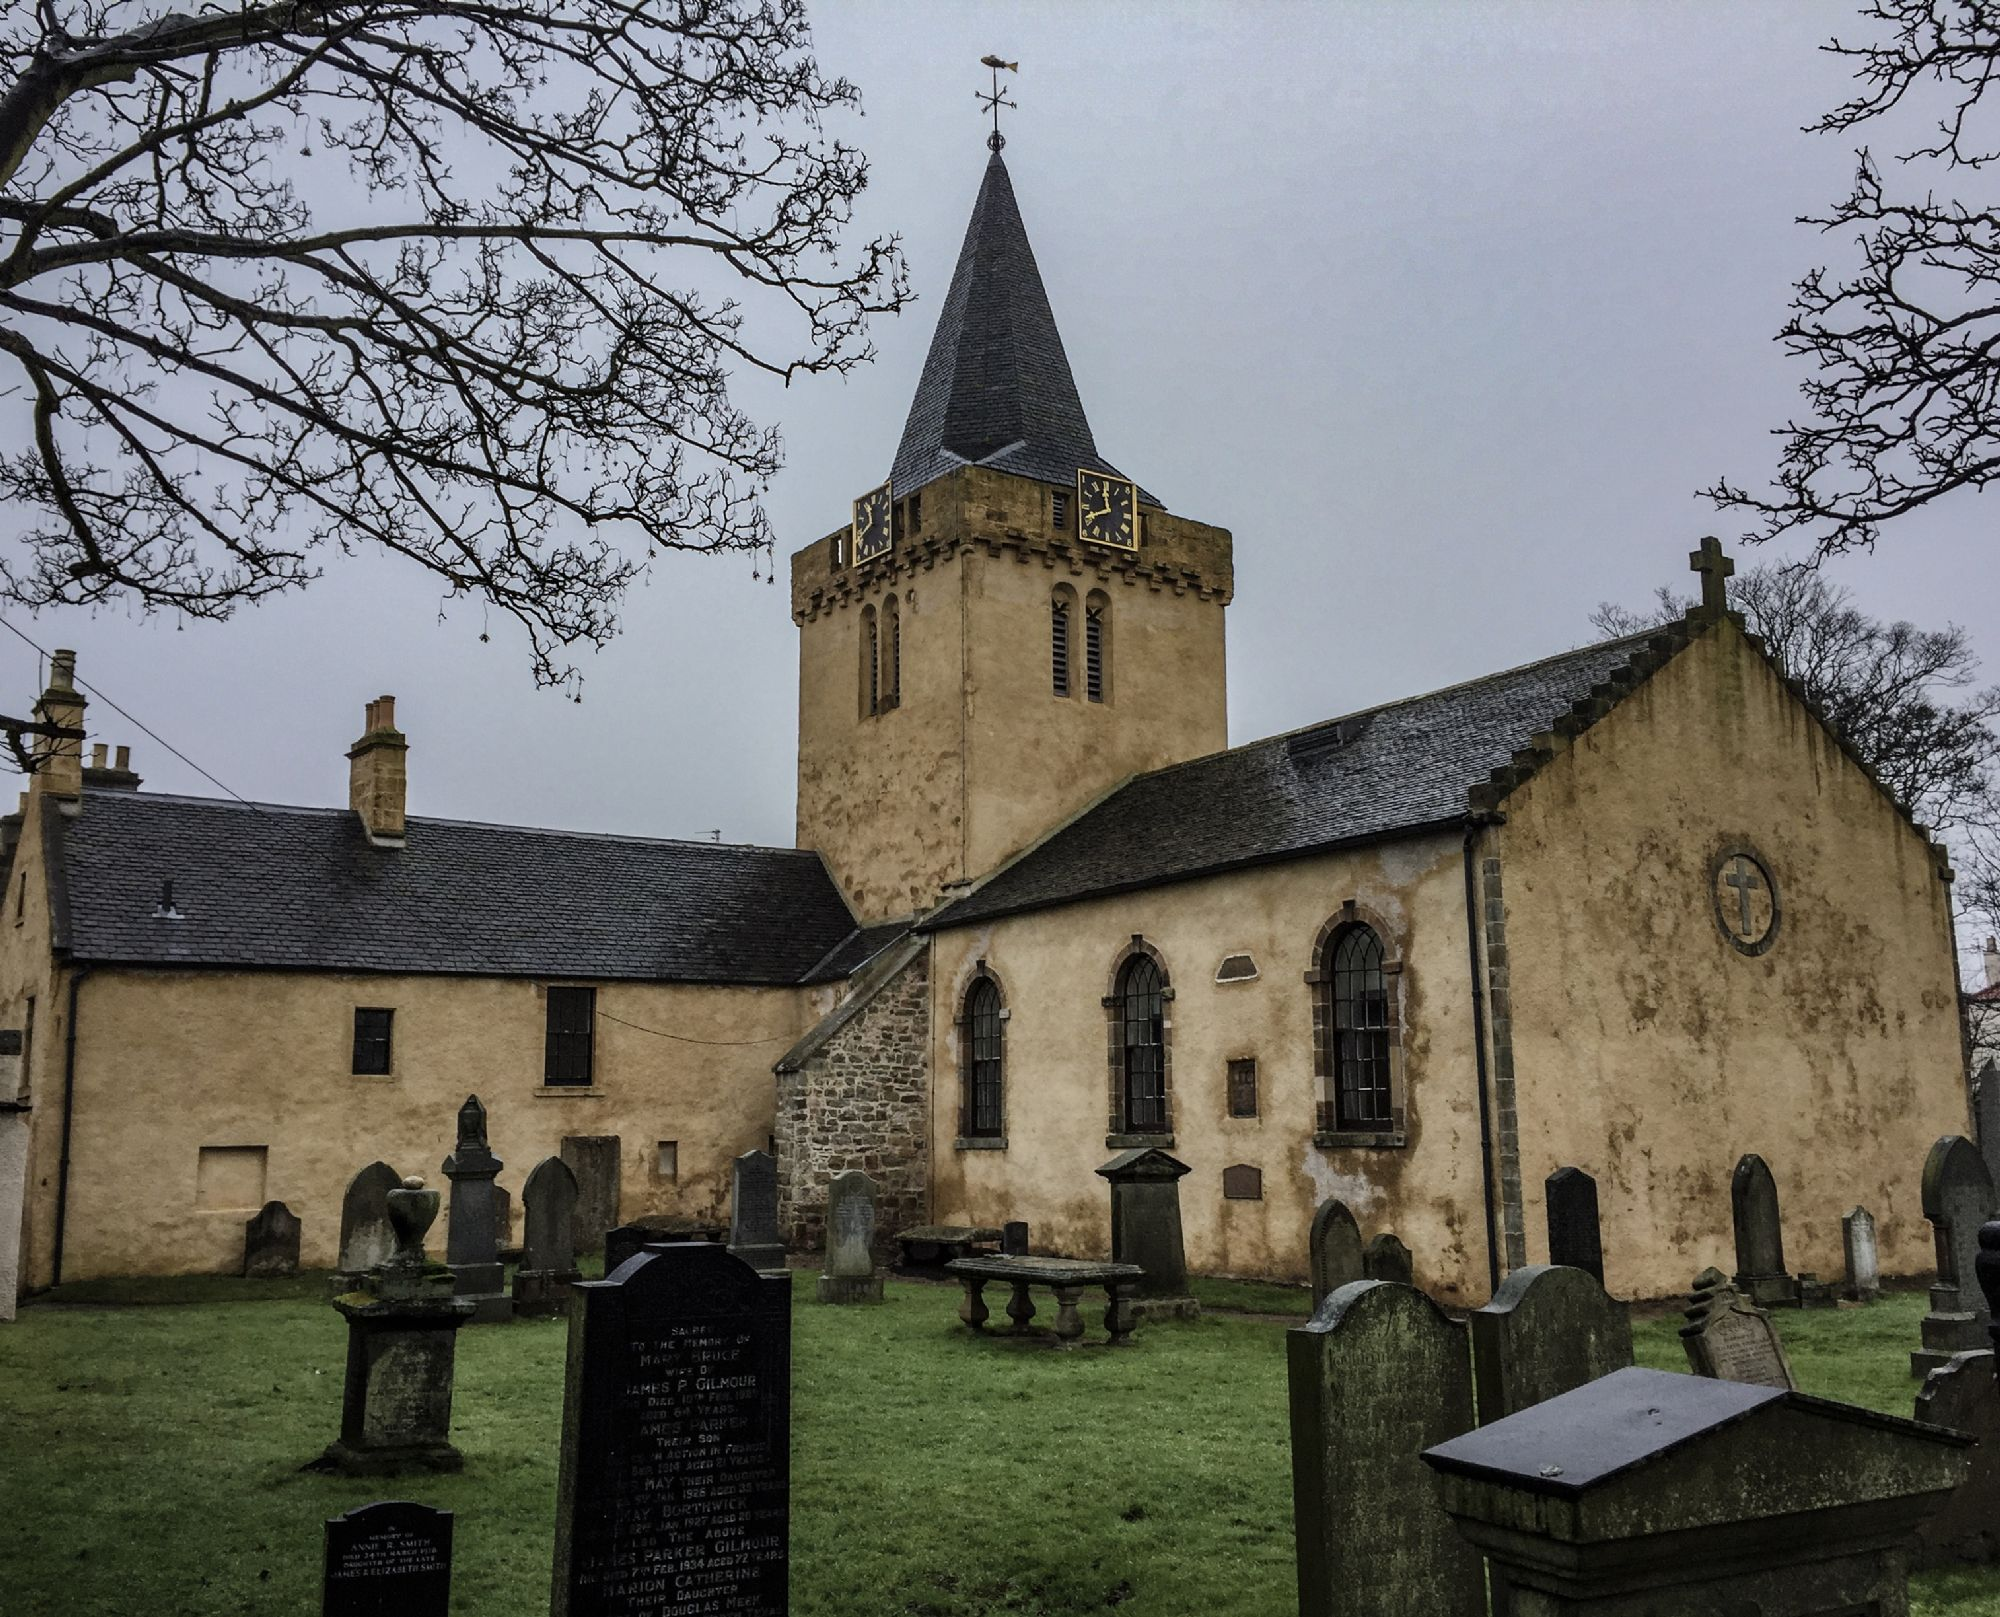 Anstruther Church